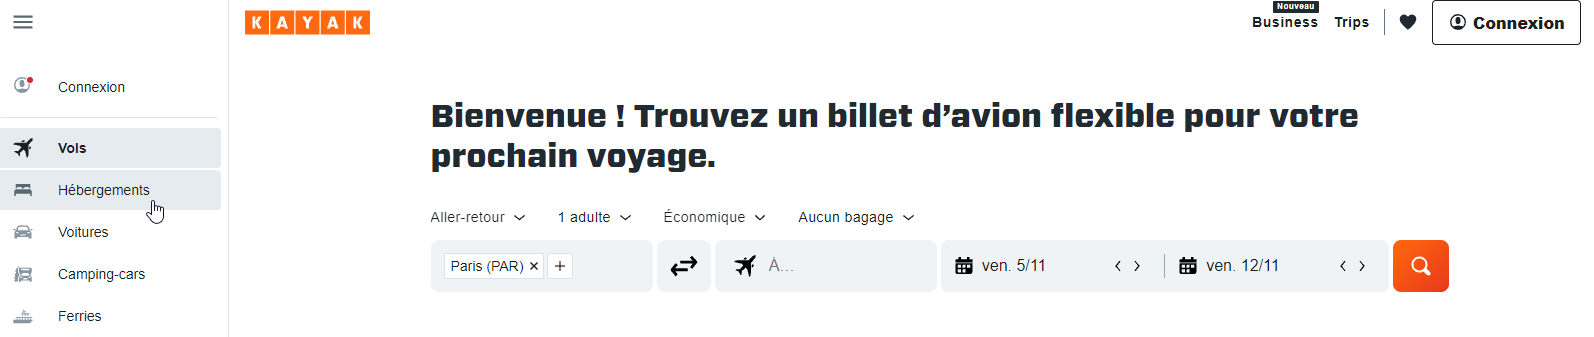 page accueil site kayak